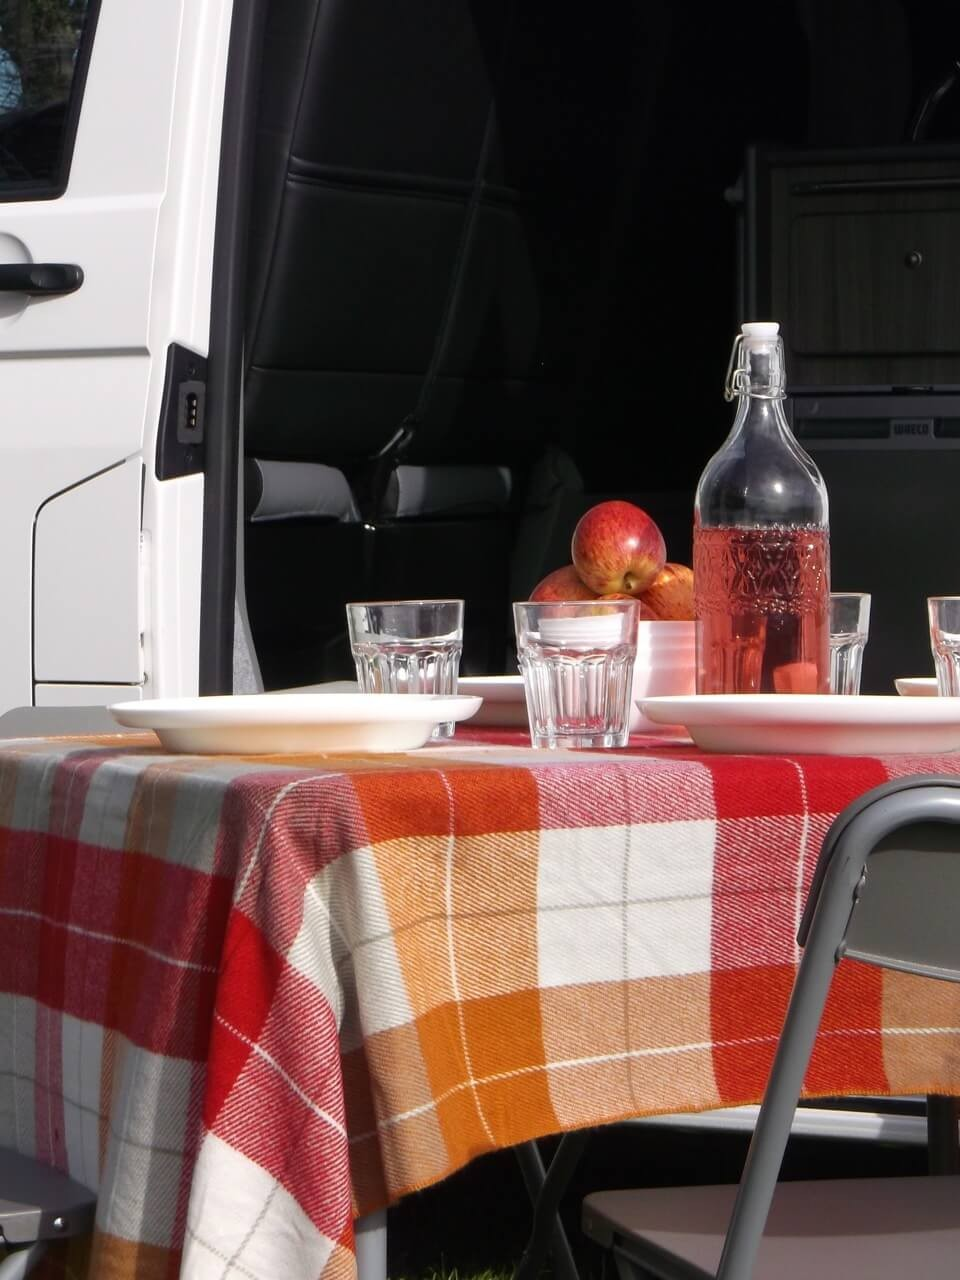 Picnic table campervan scotland